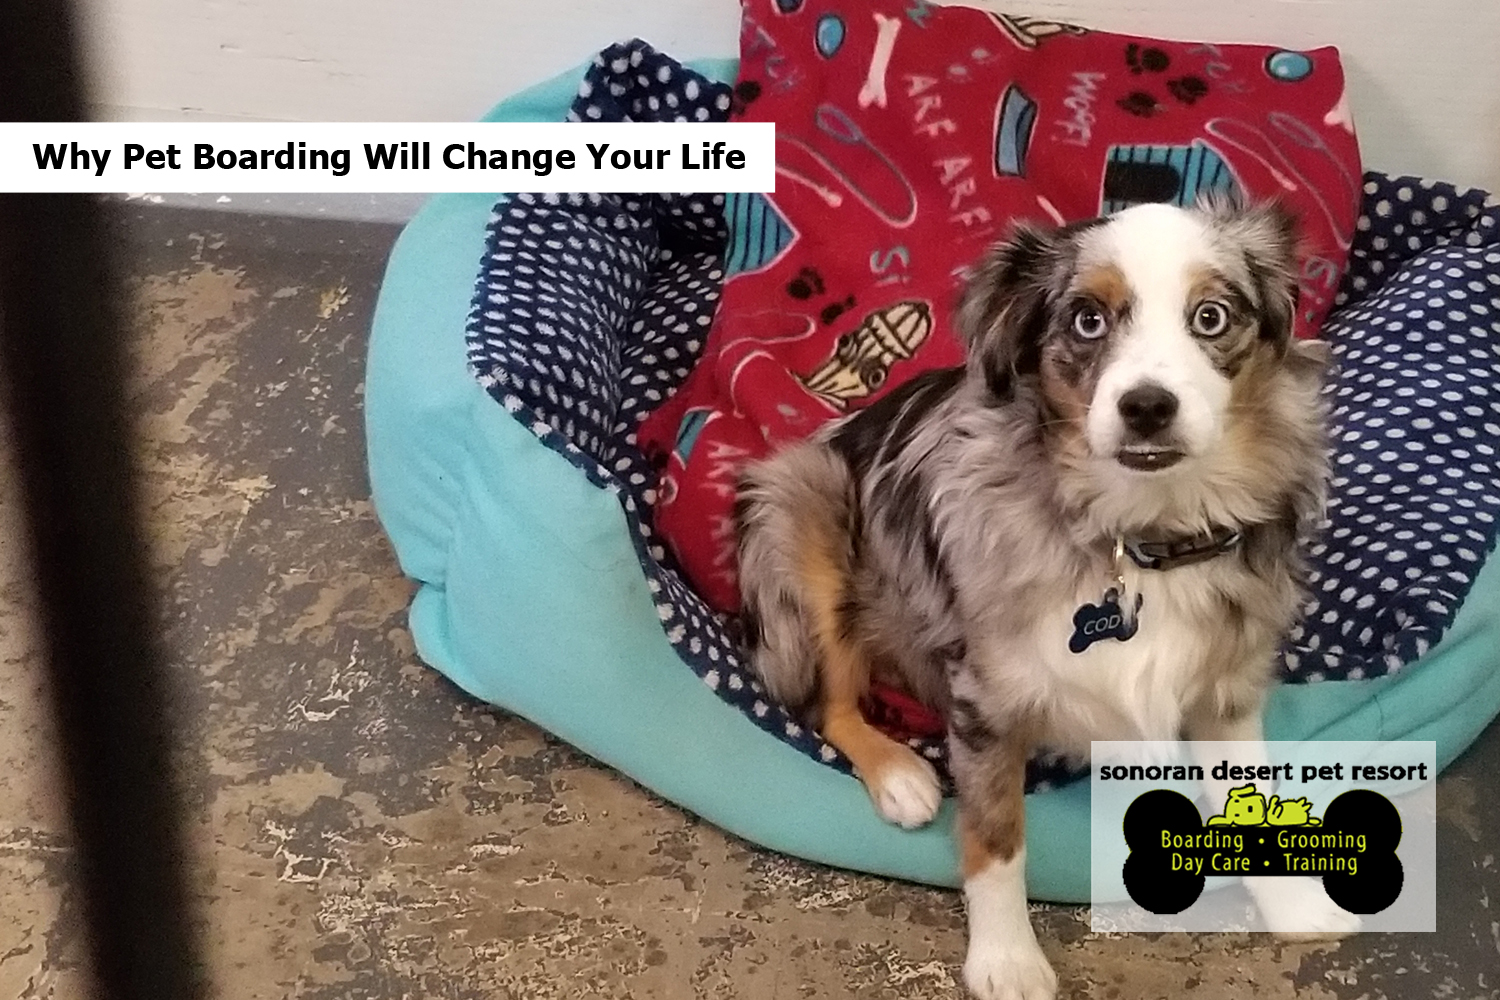 Why Pet Boarding Will Change Your Life